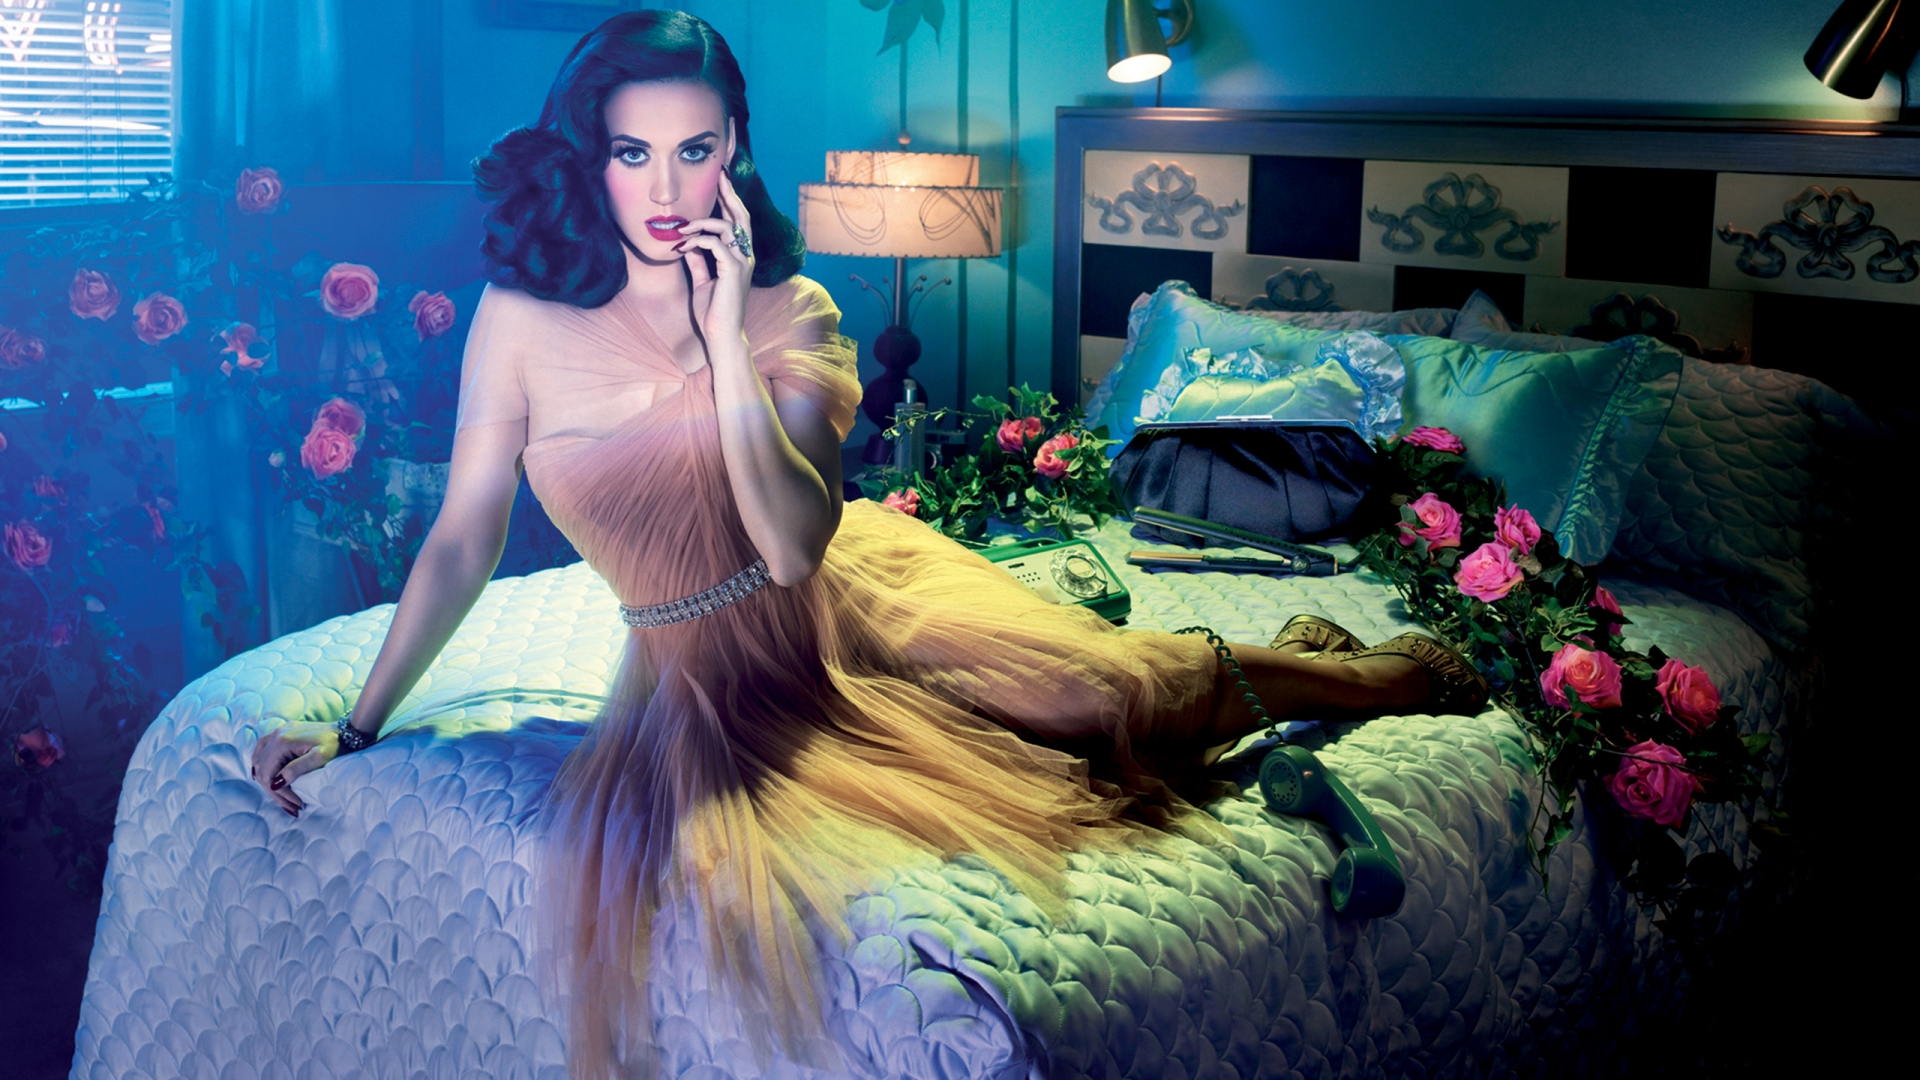 Katy Perry GHD Advertisement by David LaChapelle